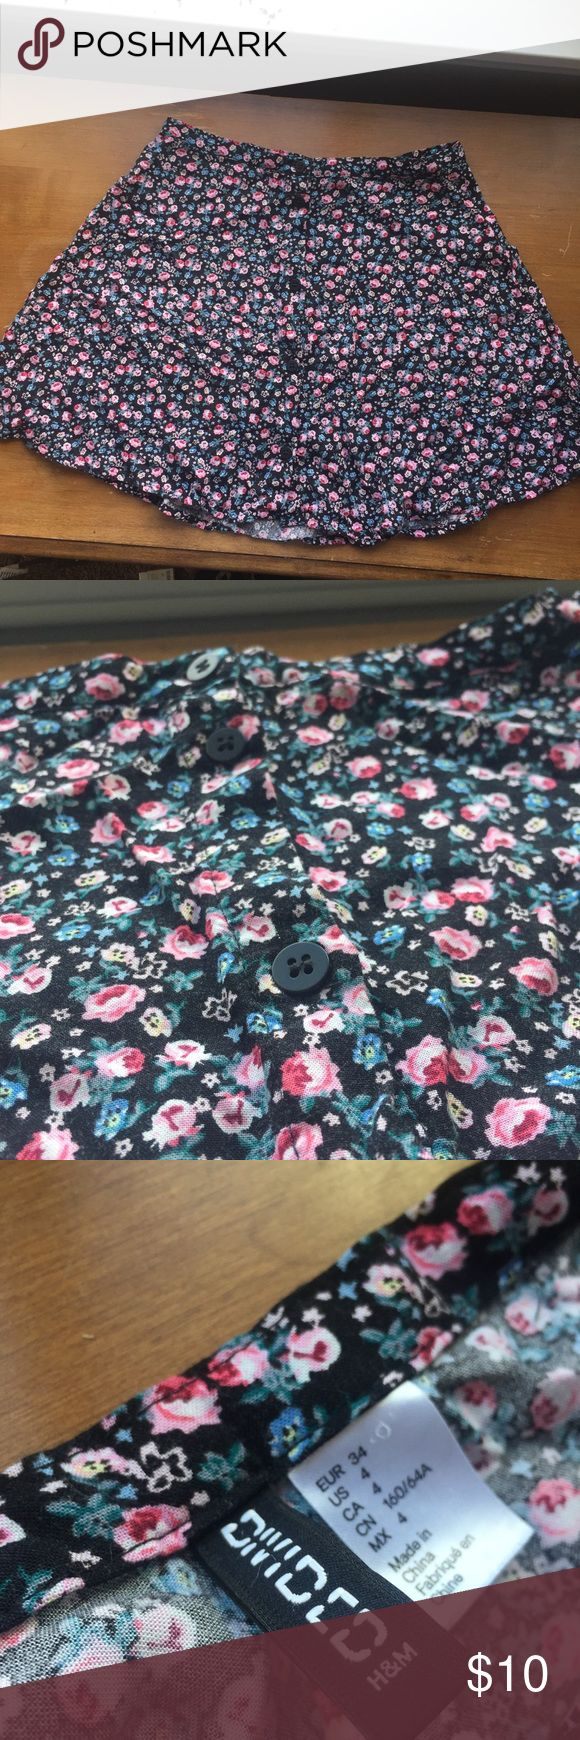 FINAL PRICE DROP*Floral Mini/Skater Skirt This Divided skirt is in great condition! Perfect for spring and summer and would be super cute with black tights underneath. Divided Skirts Circle & Skater